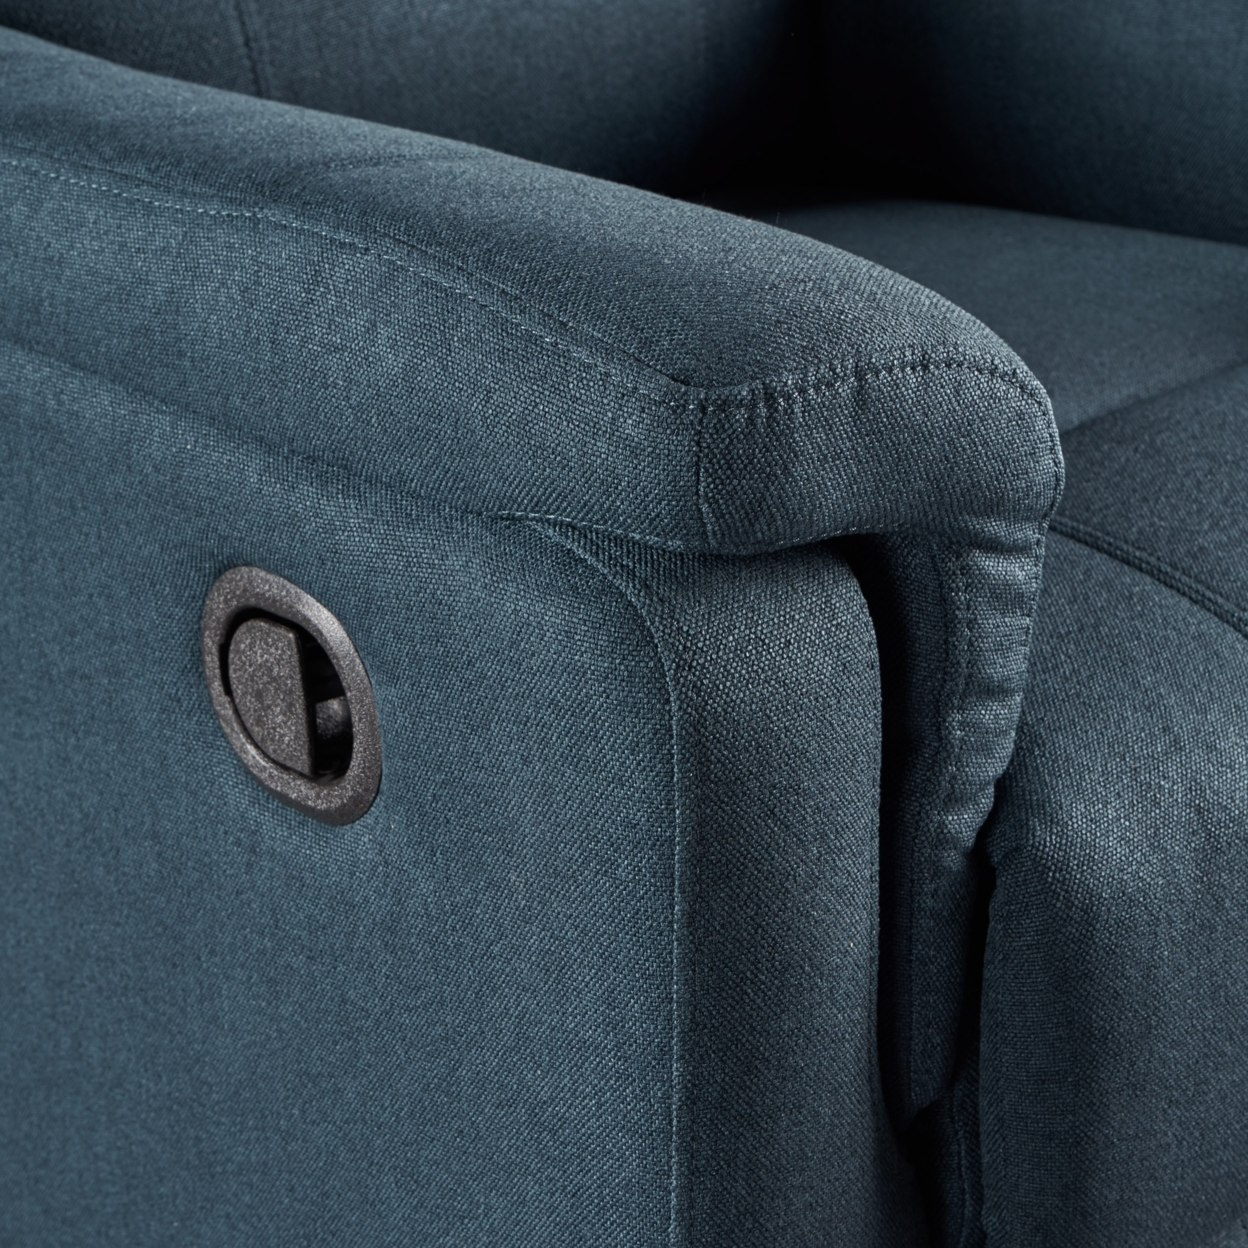 Jemma Tufted Fabric Swivel Gliding Recliner Chair In Living Room With Regard To Decker Ii Fabric Swivel Glider Recliners (Image 17 of 25)